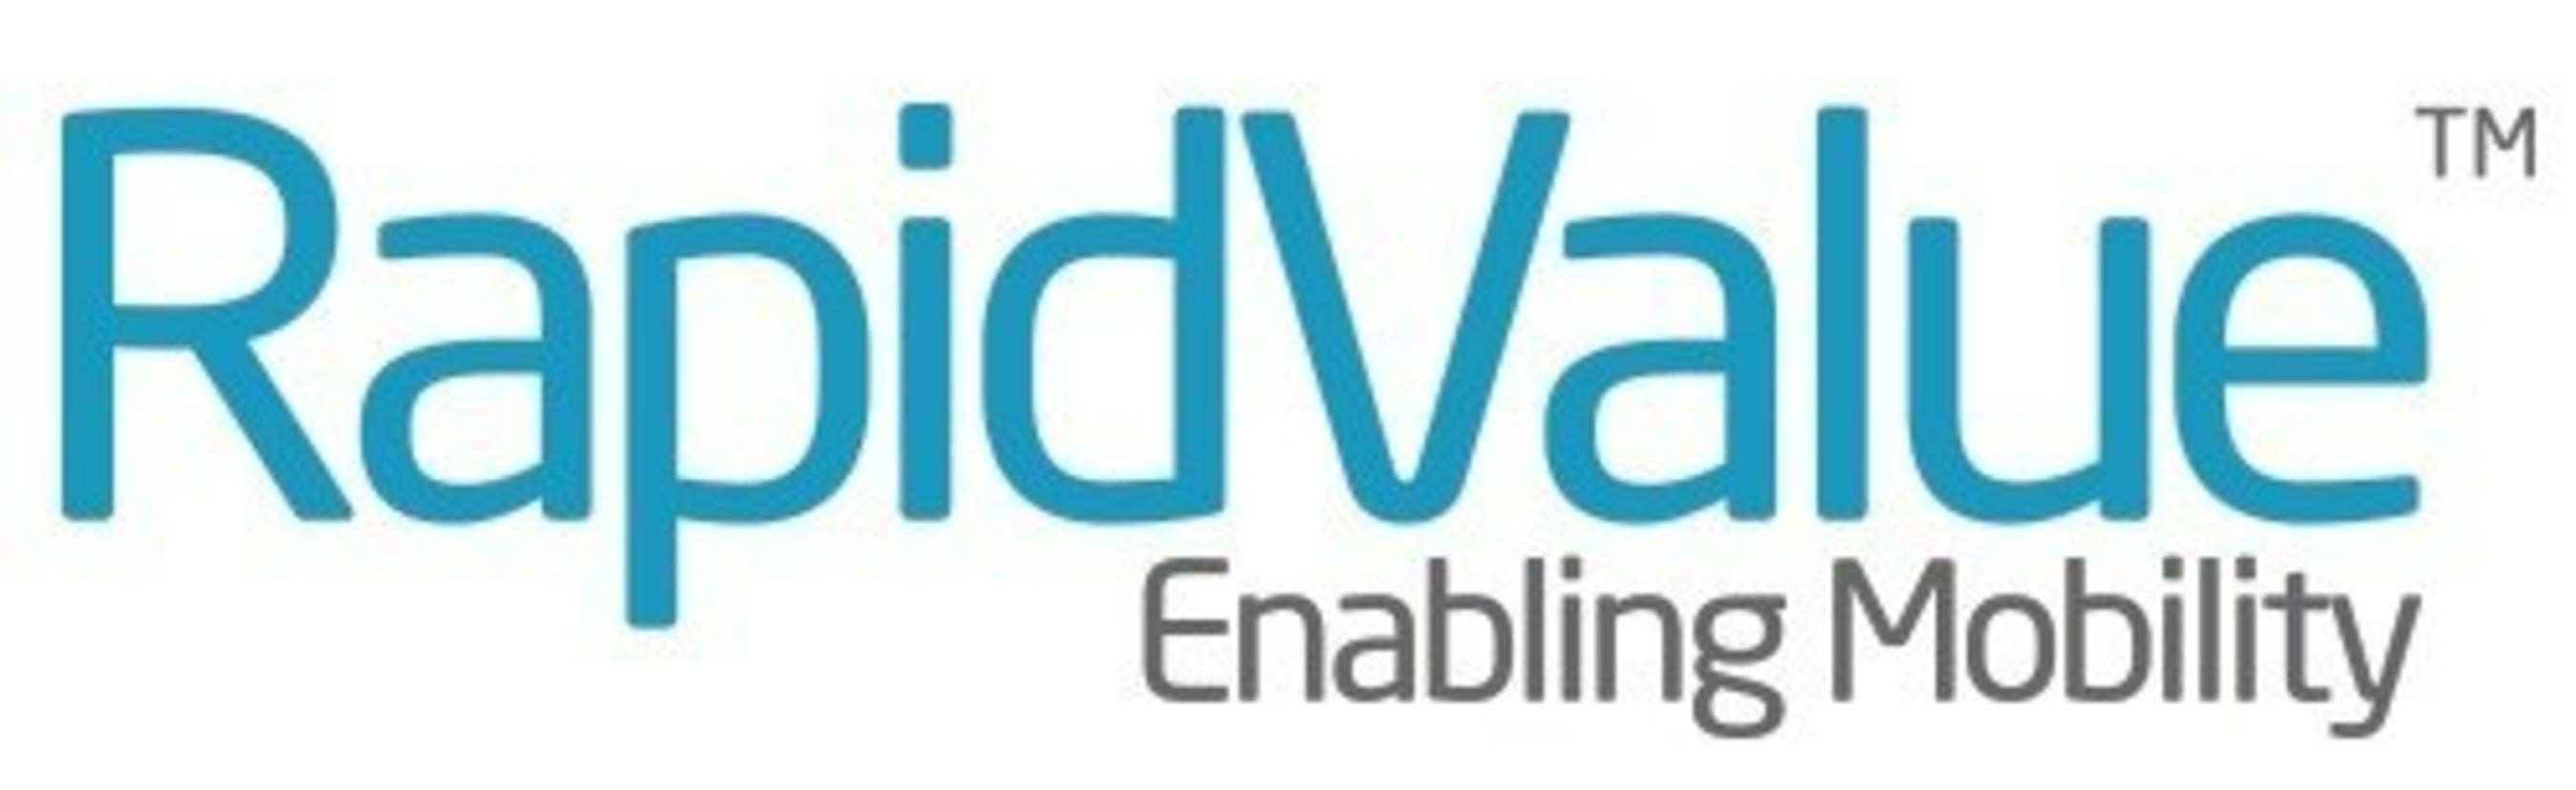 RapidValue Creates a Mobility Business Consulting Group to help Customers Stay ahead in Innovation